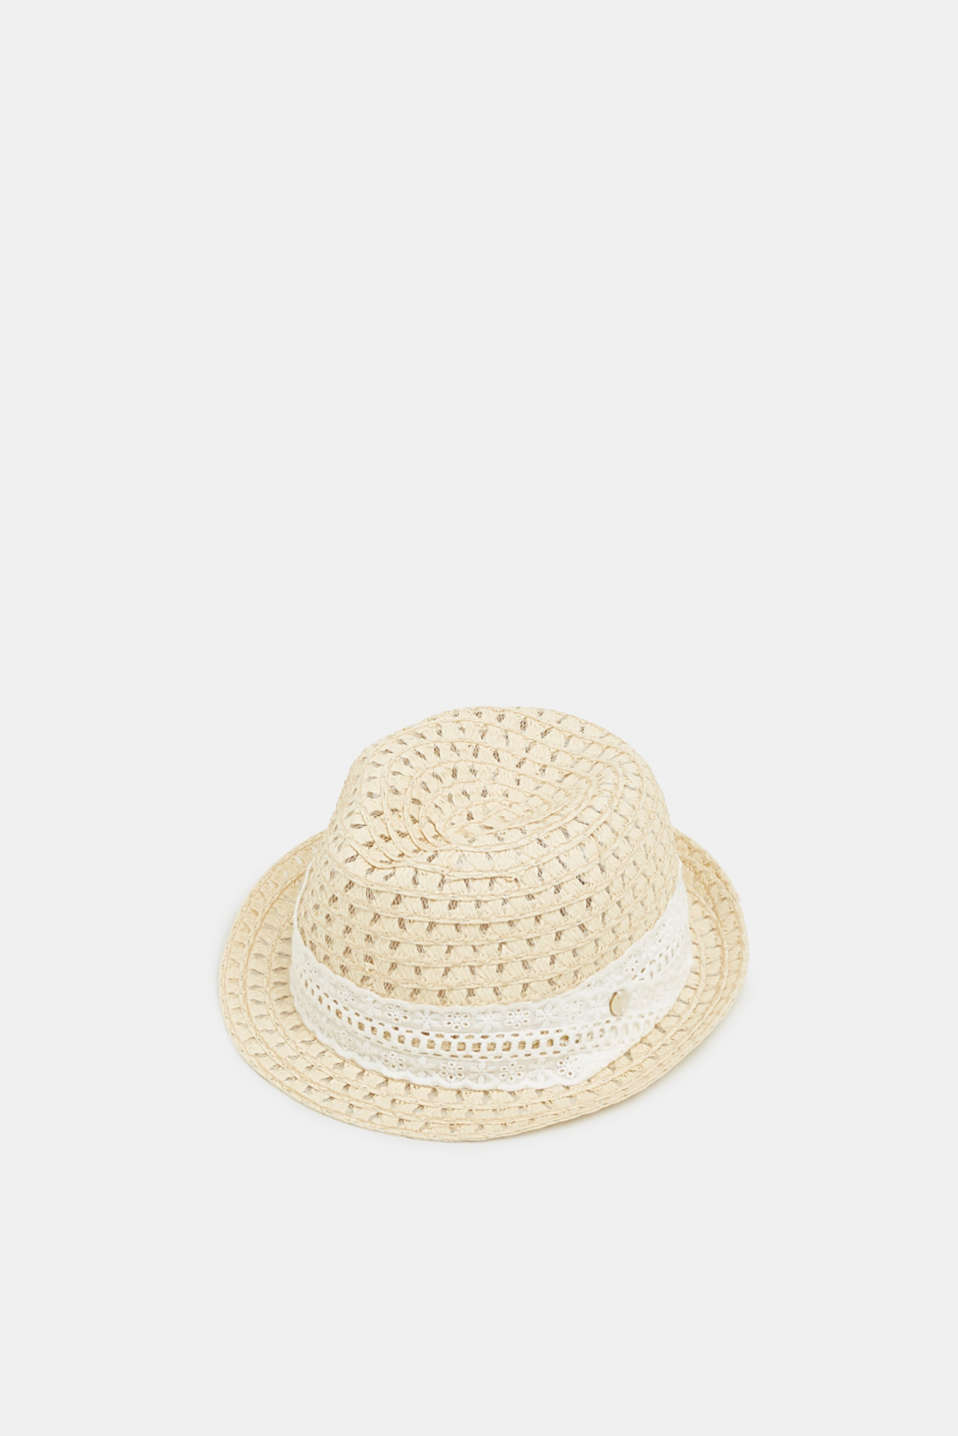 Esprit - Braided trilby hat made of straw